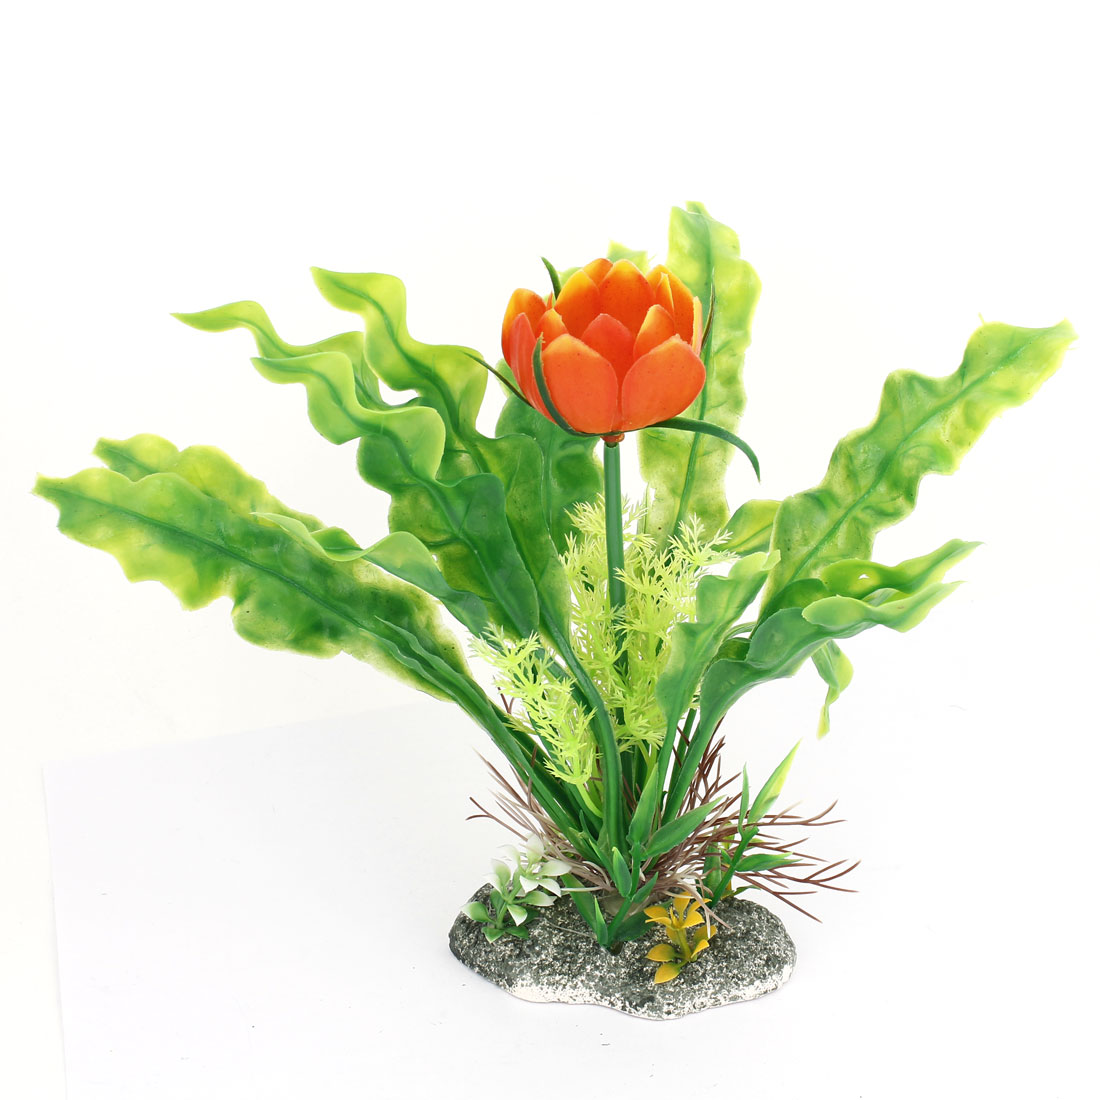 "Aquarium Orange Flower Green Leaf Plastic Grass Plant Decor 8"" Height"